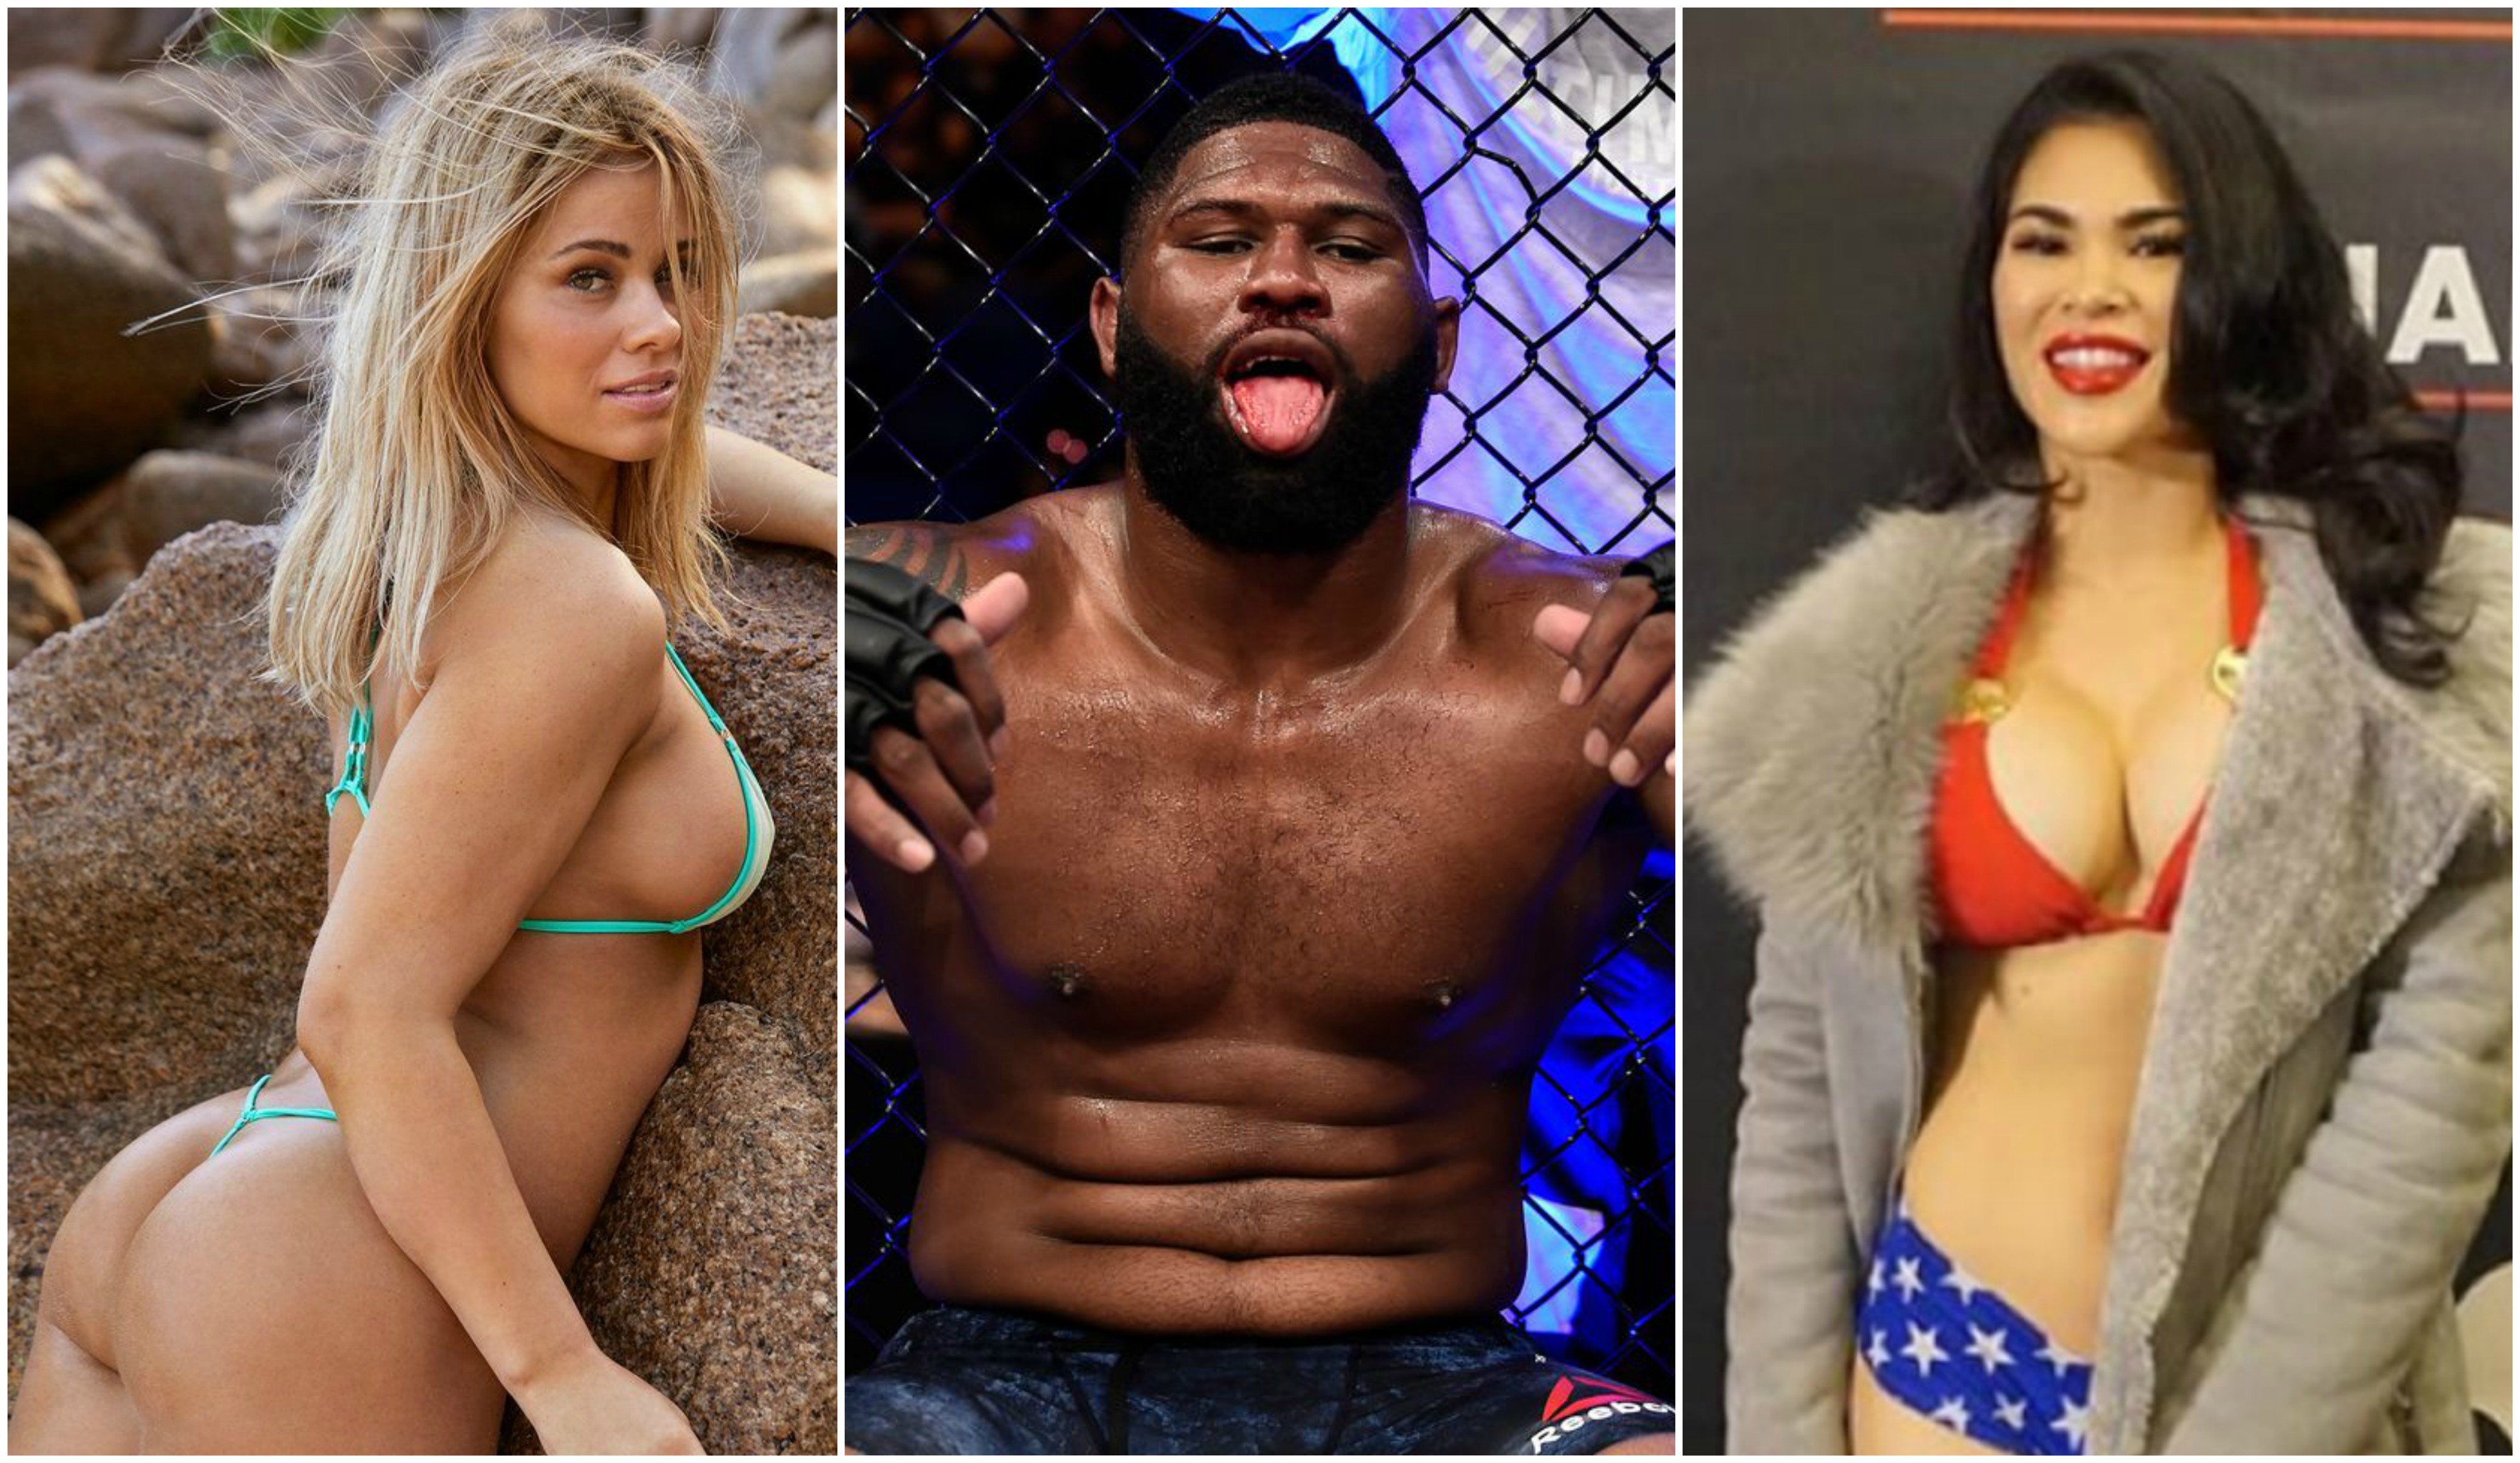 UFC News: Heavyweight Curtis Blaydes slams MMA fighters who 'sell their body' for better card placement - Curtis Blaydes